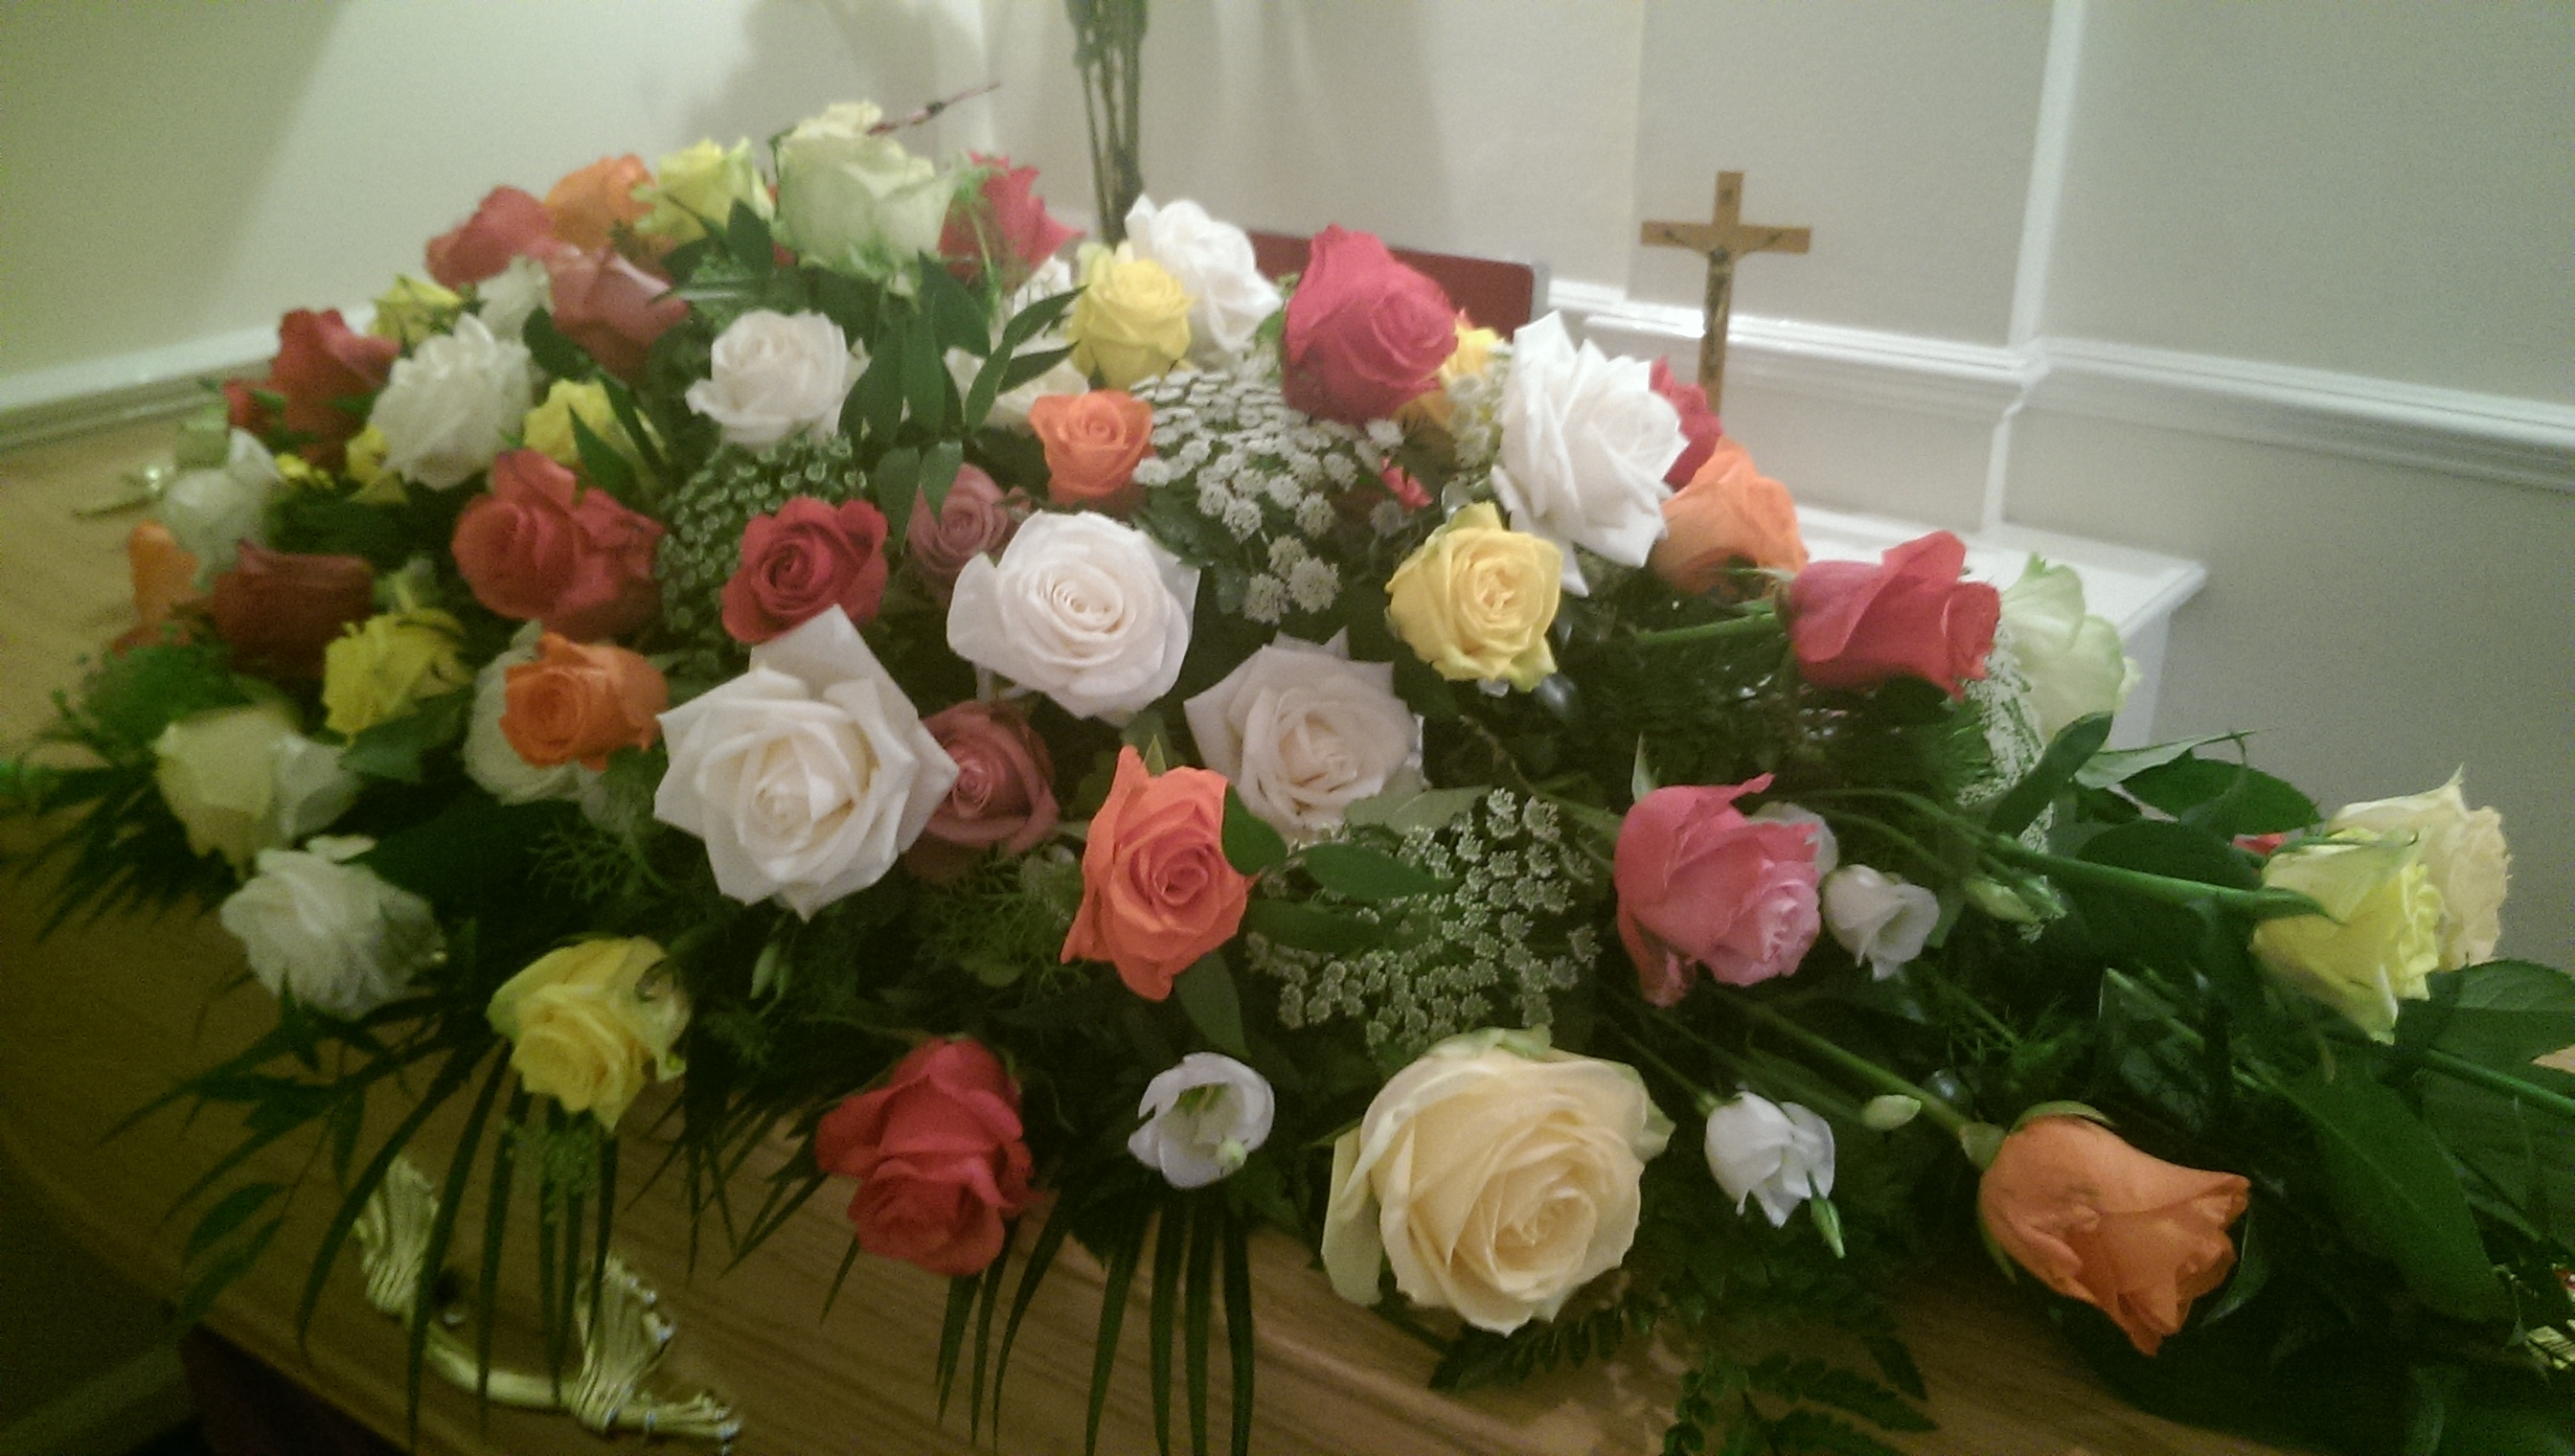 Mixed Roses Coffin Flowers